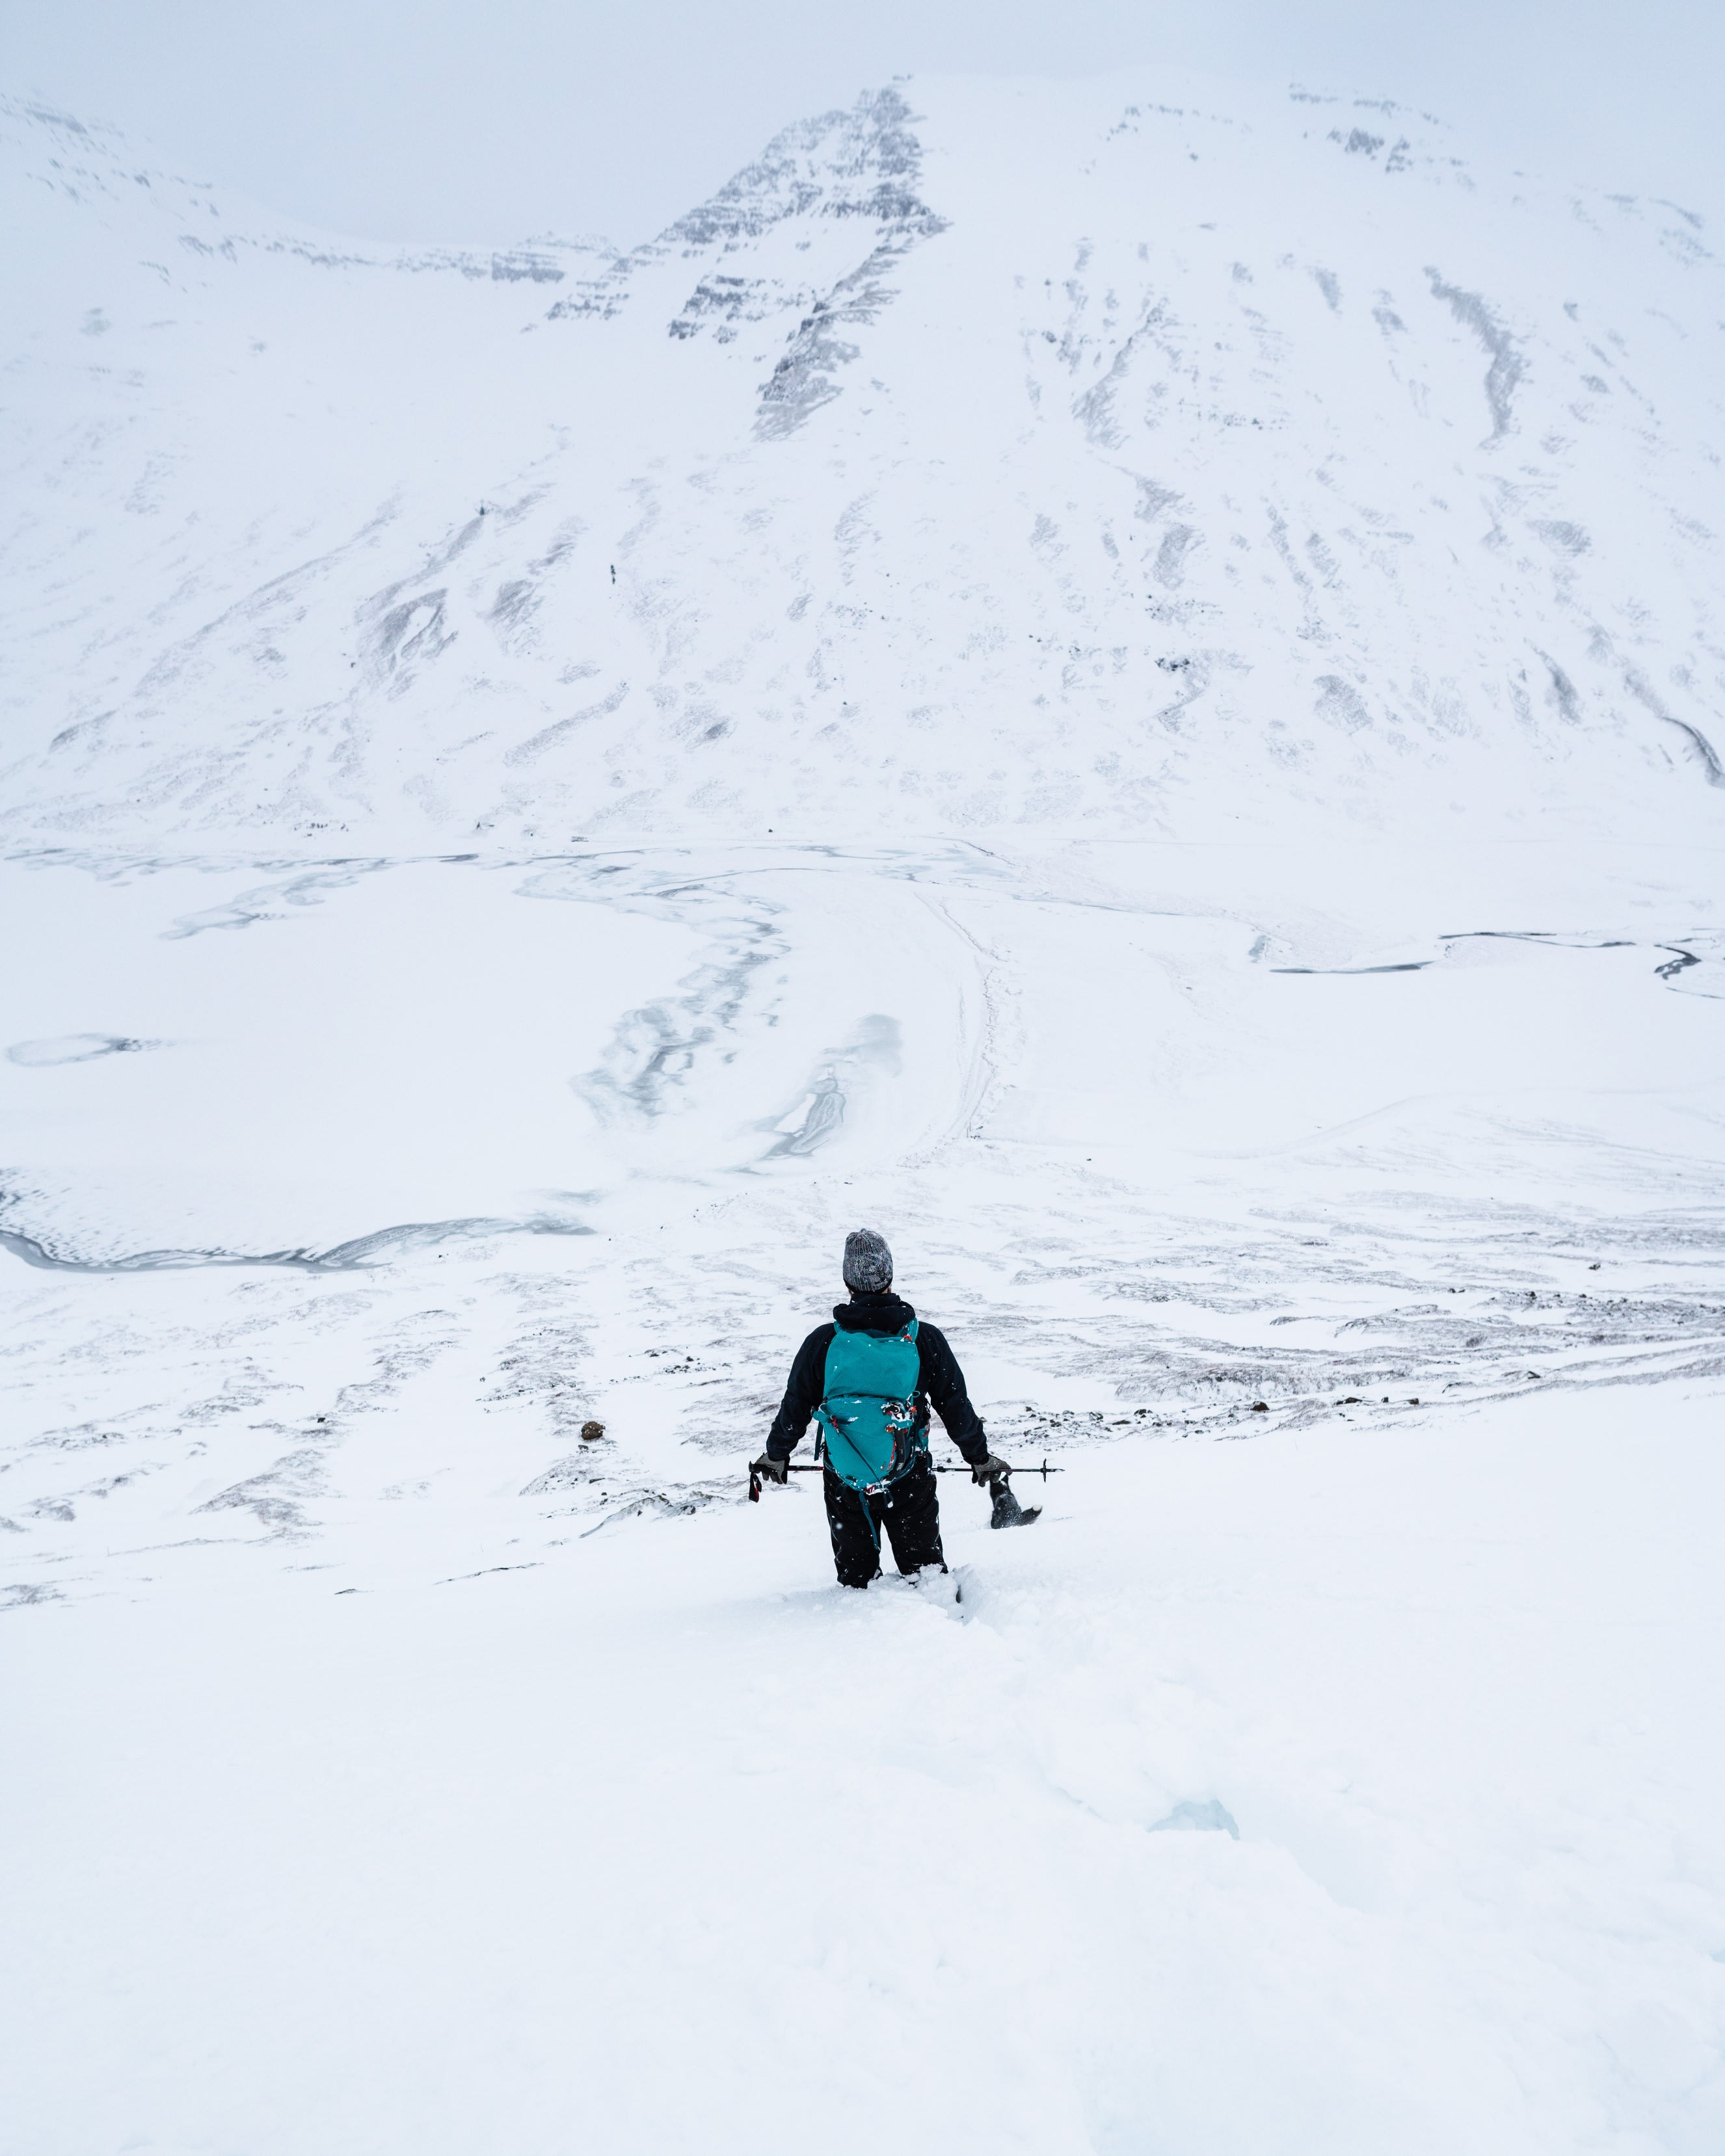 a person wearing all black with a blue backpack standing in a snowy Icelandic mountain region